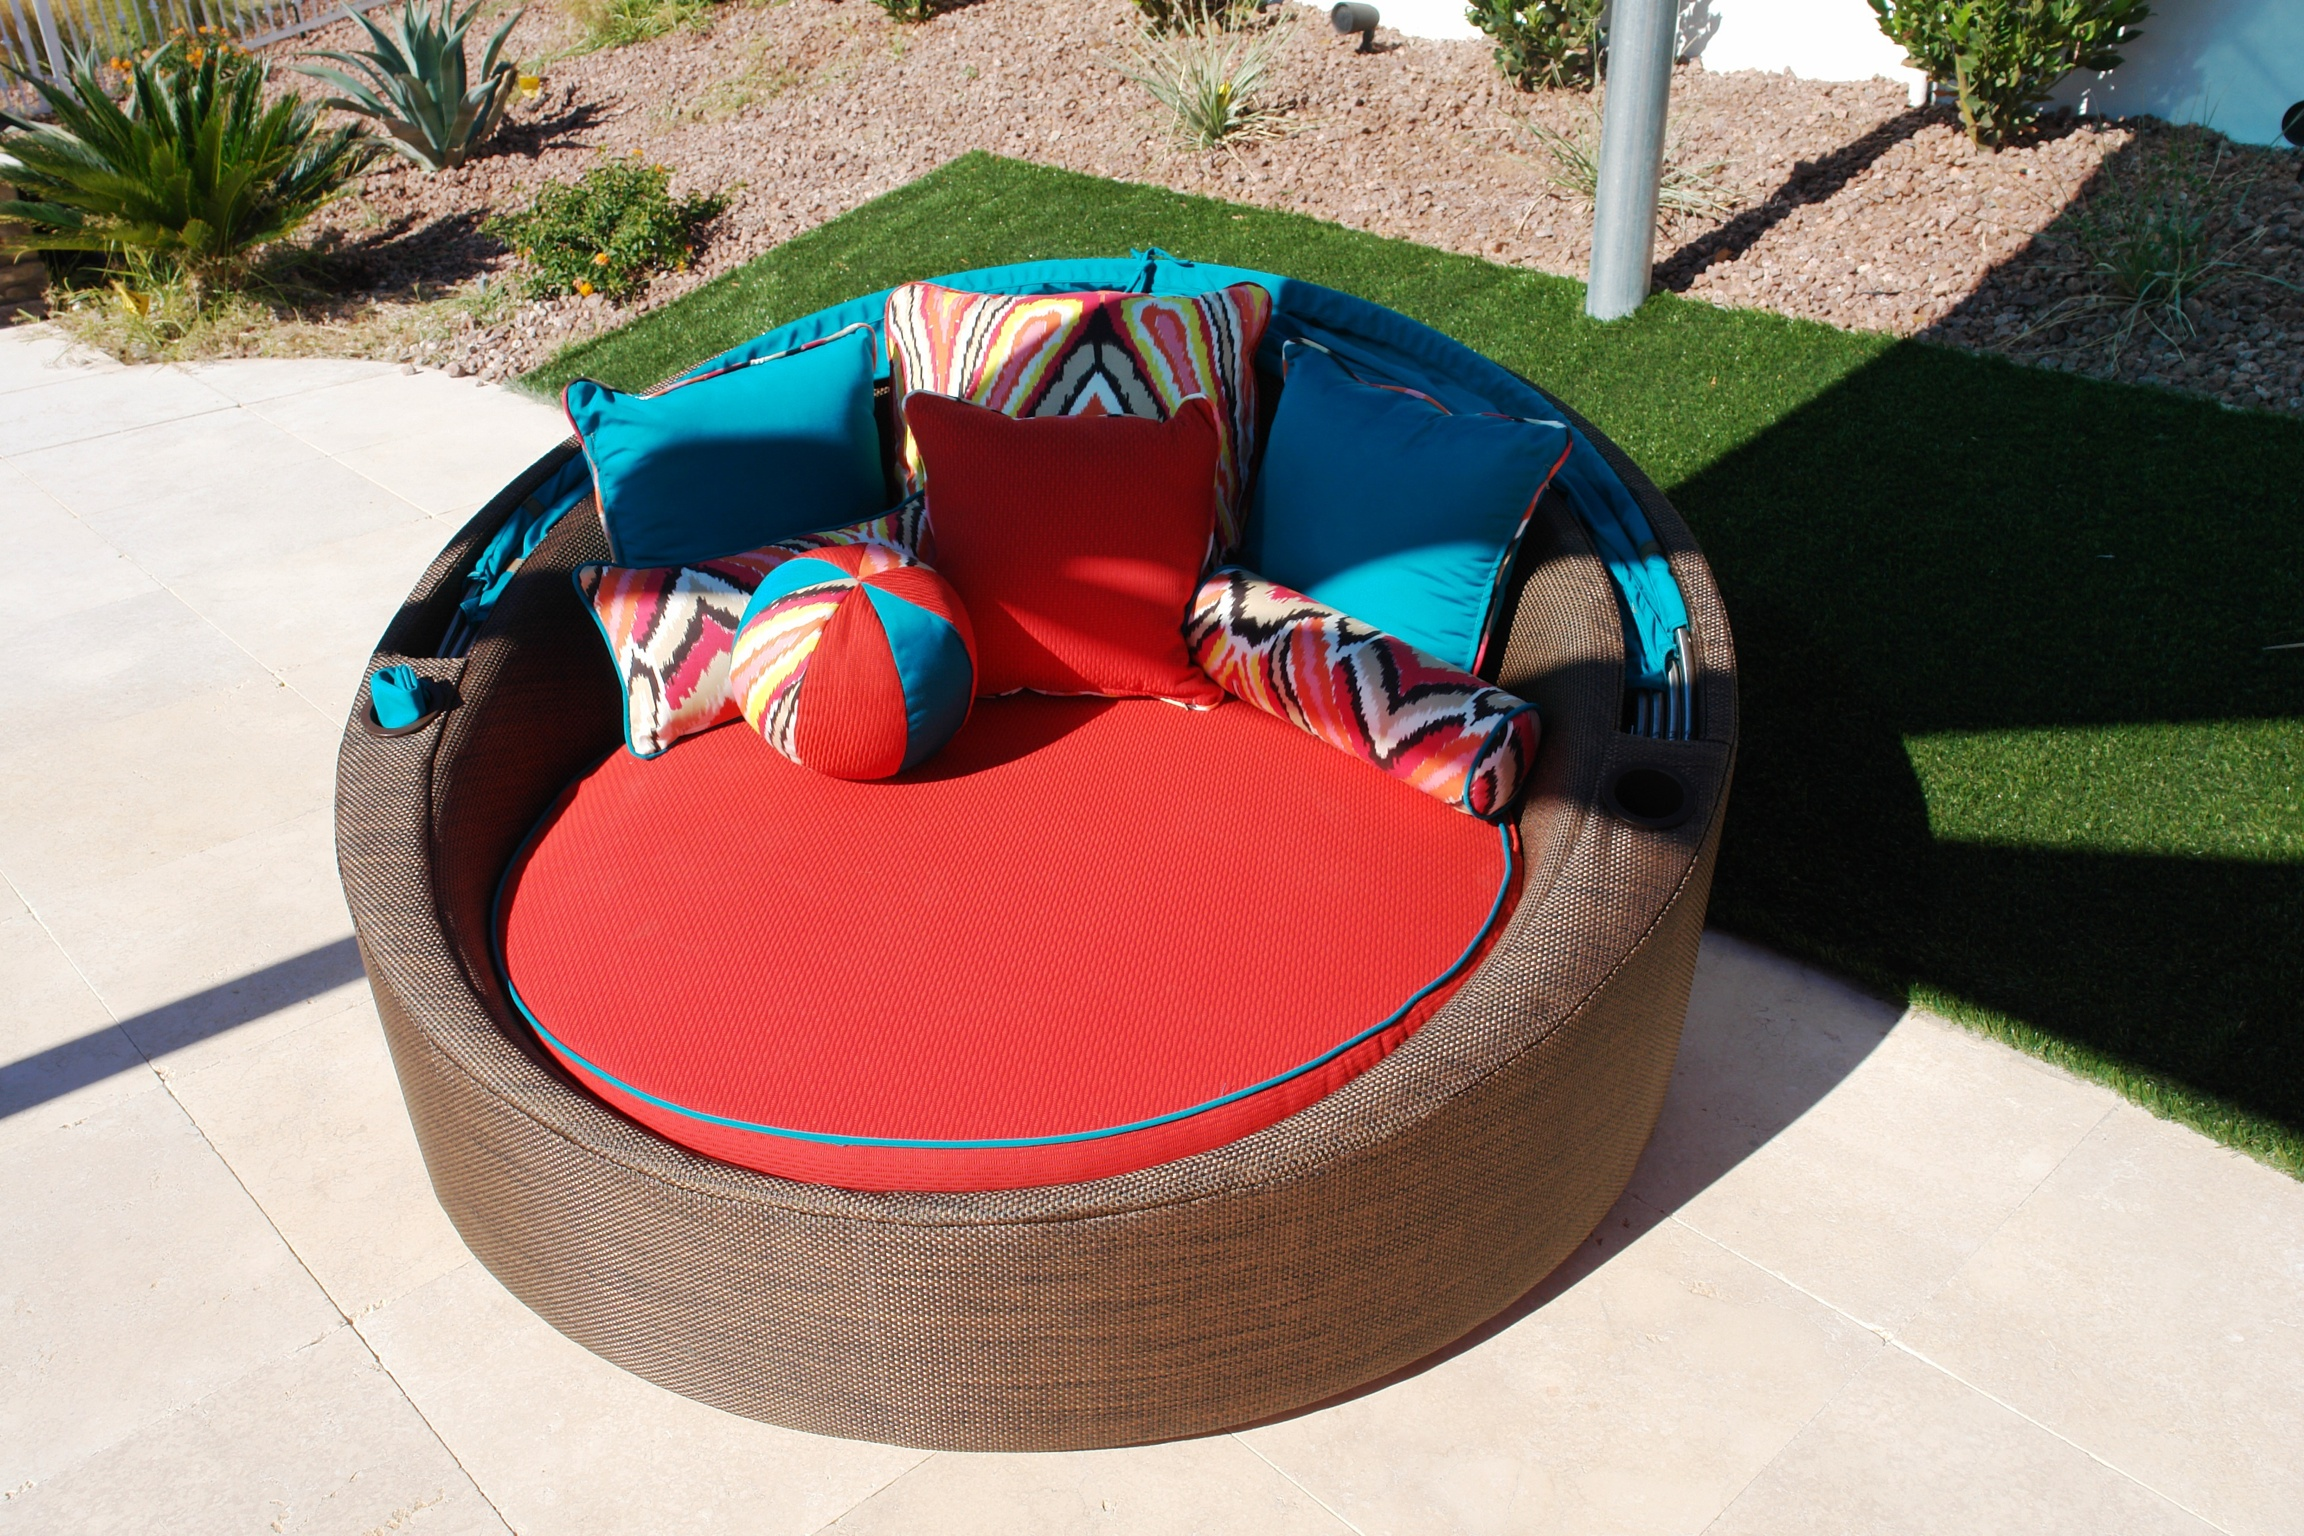 Custom Outdoor Furniture Design. Minimalist Design Las Vegas